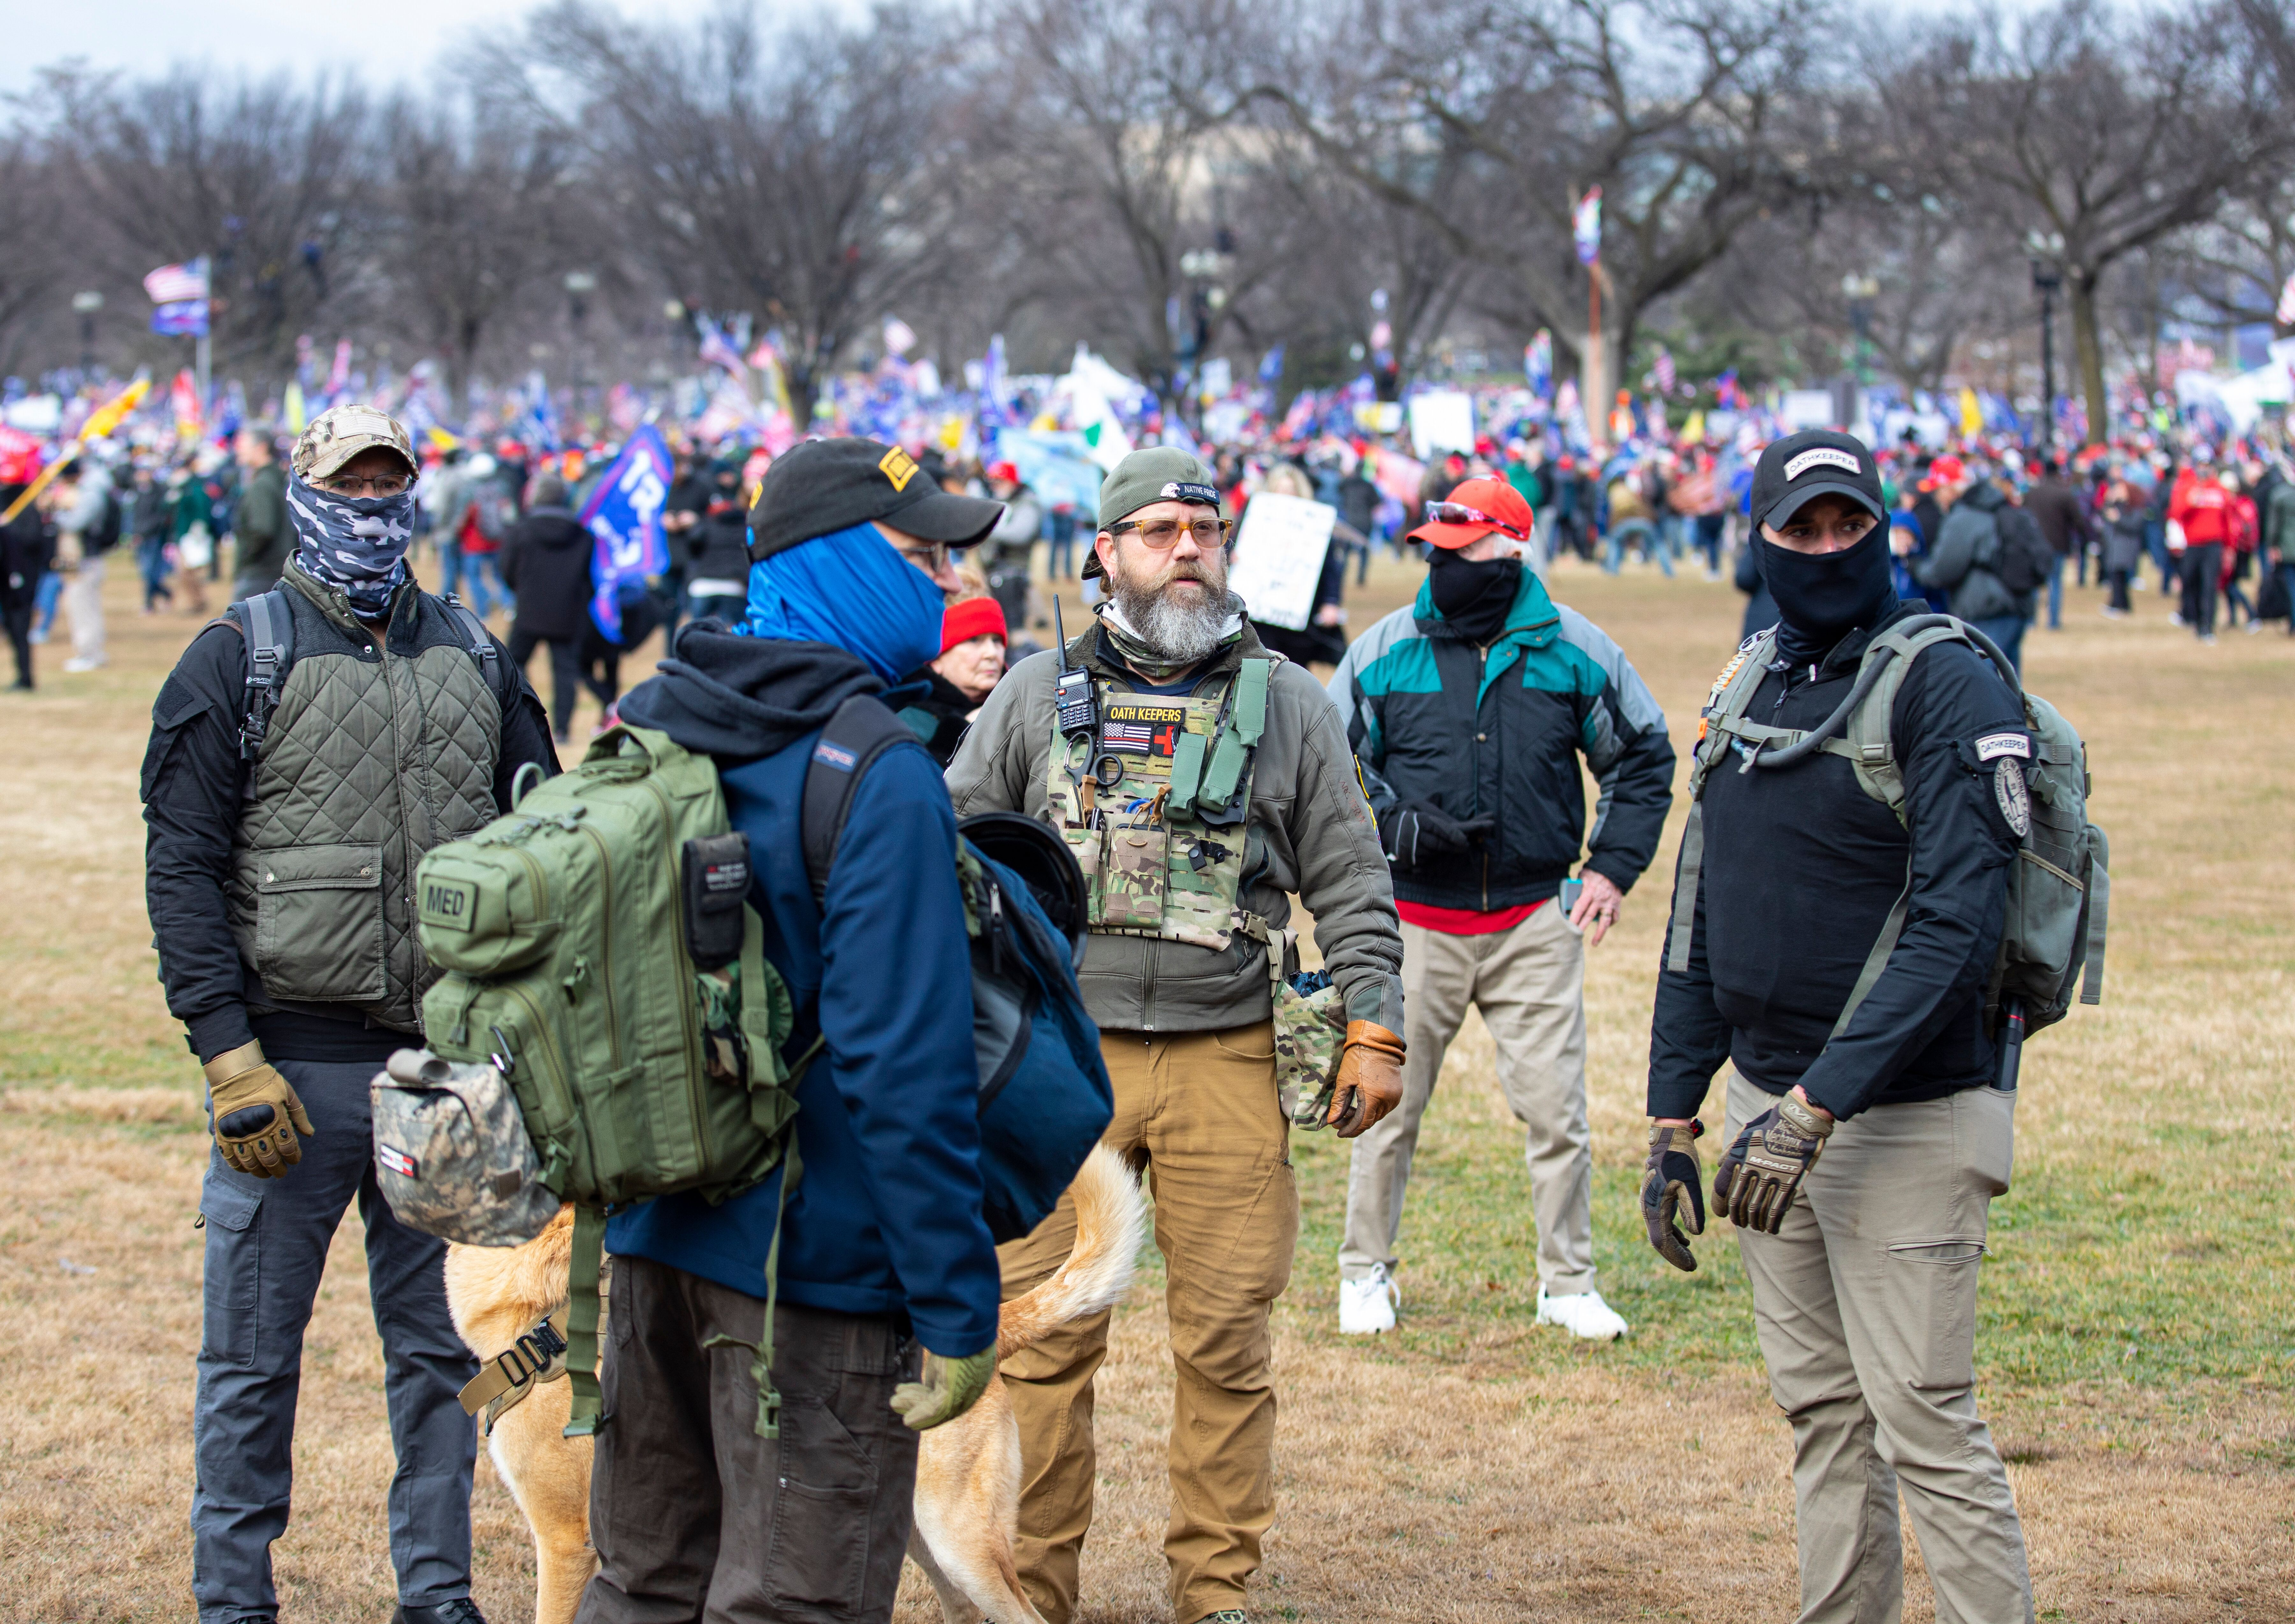 """WASHINGTON, DC - JANUARY 06: Men belonging to the Oath Keepers wearing military tactical gear attend the """"Stop the Steal"""" ral"""